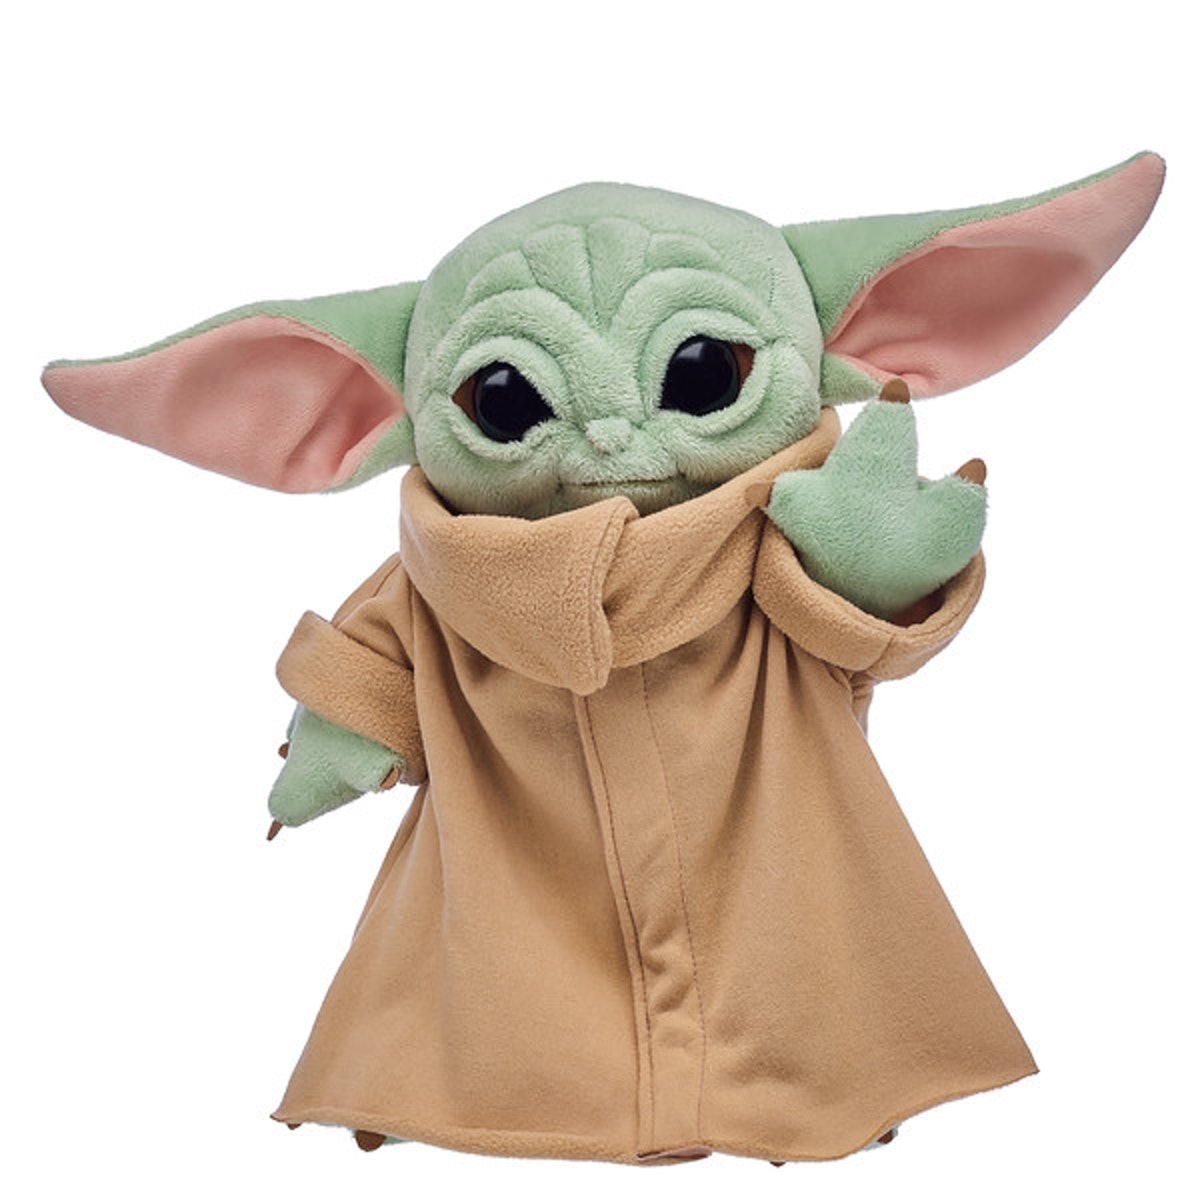 This new Baby Yoda merch for 2020 is seriously out of this world.